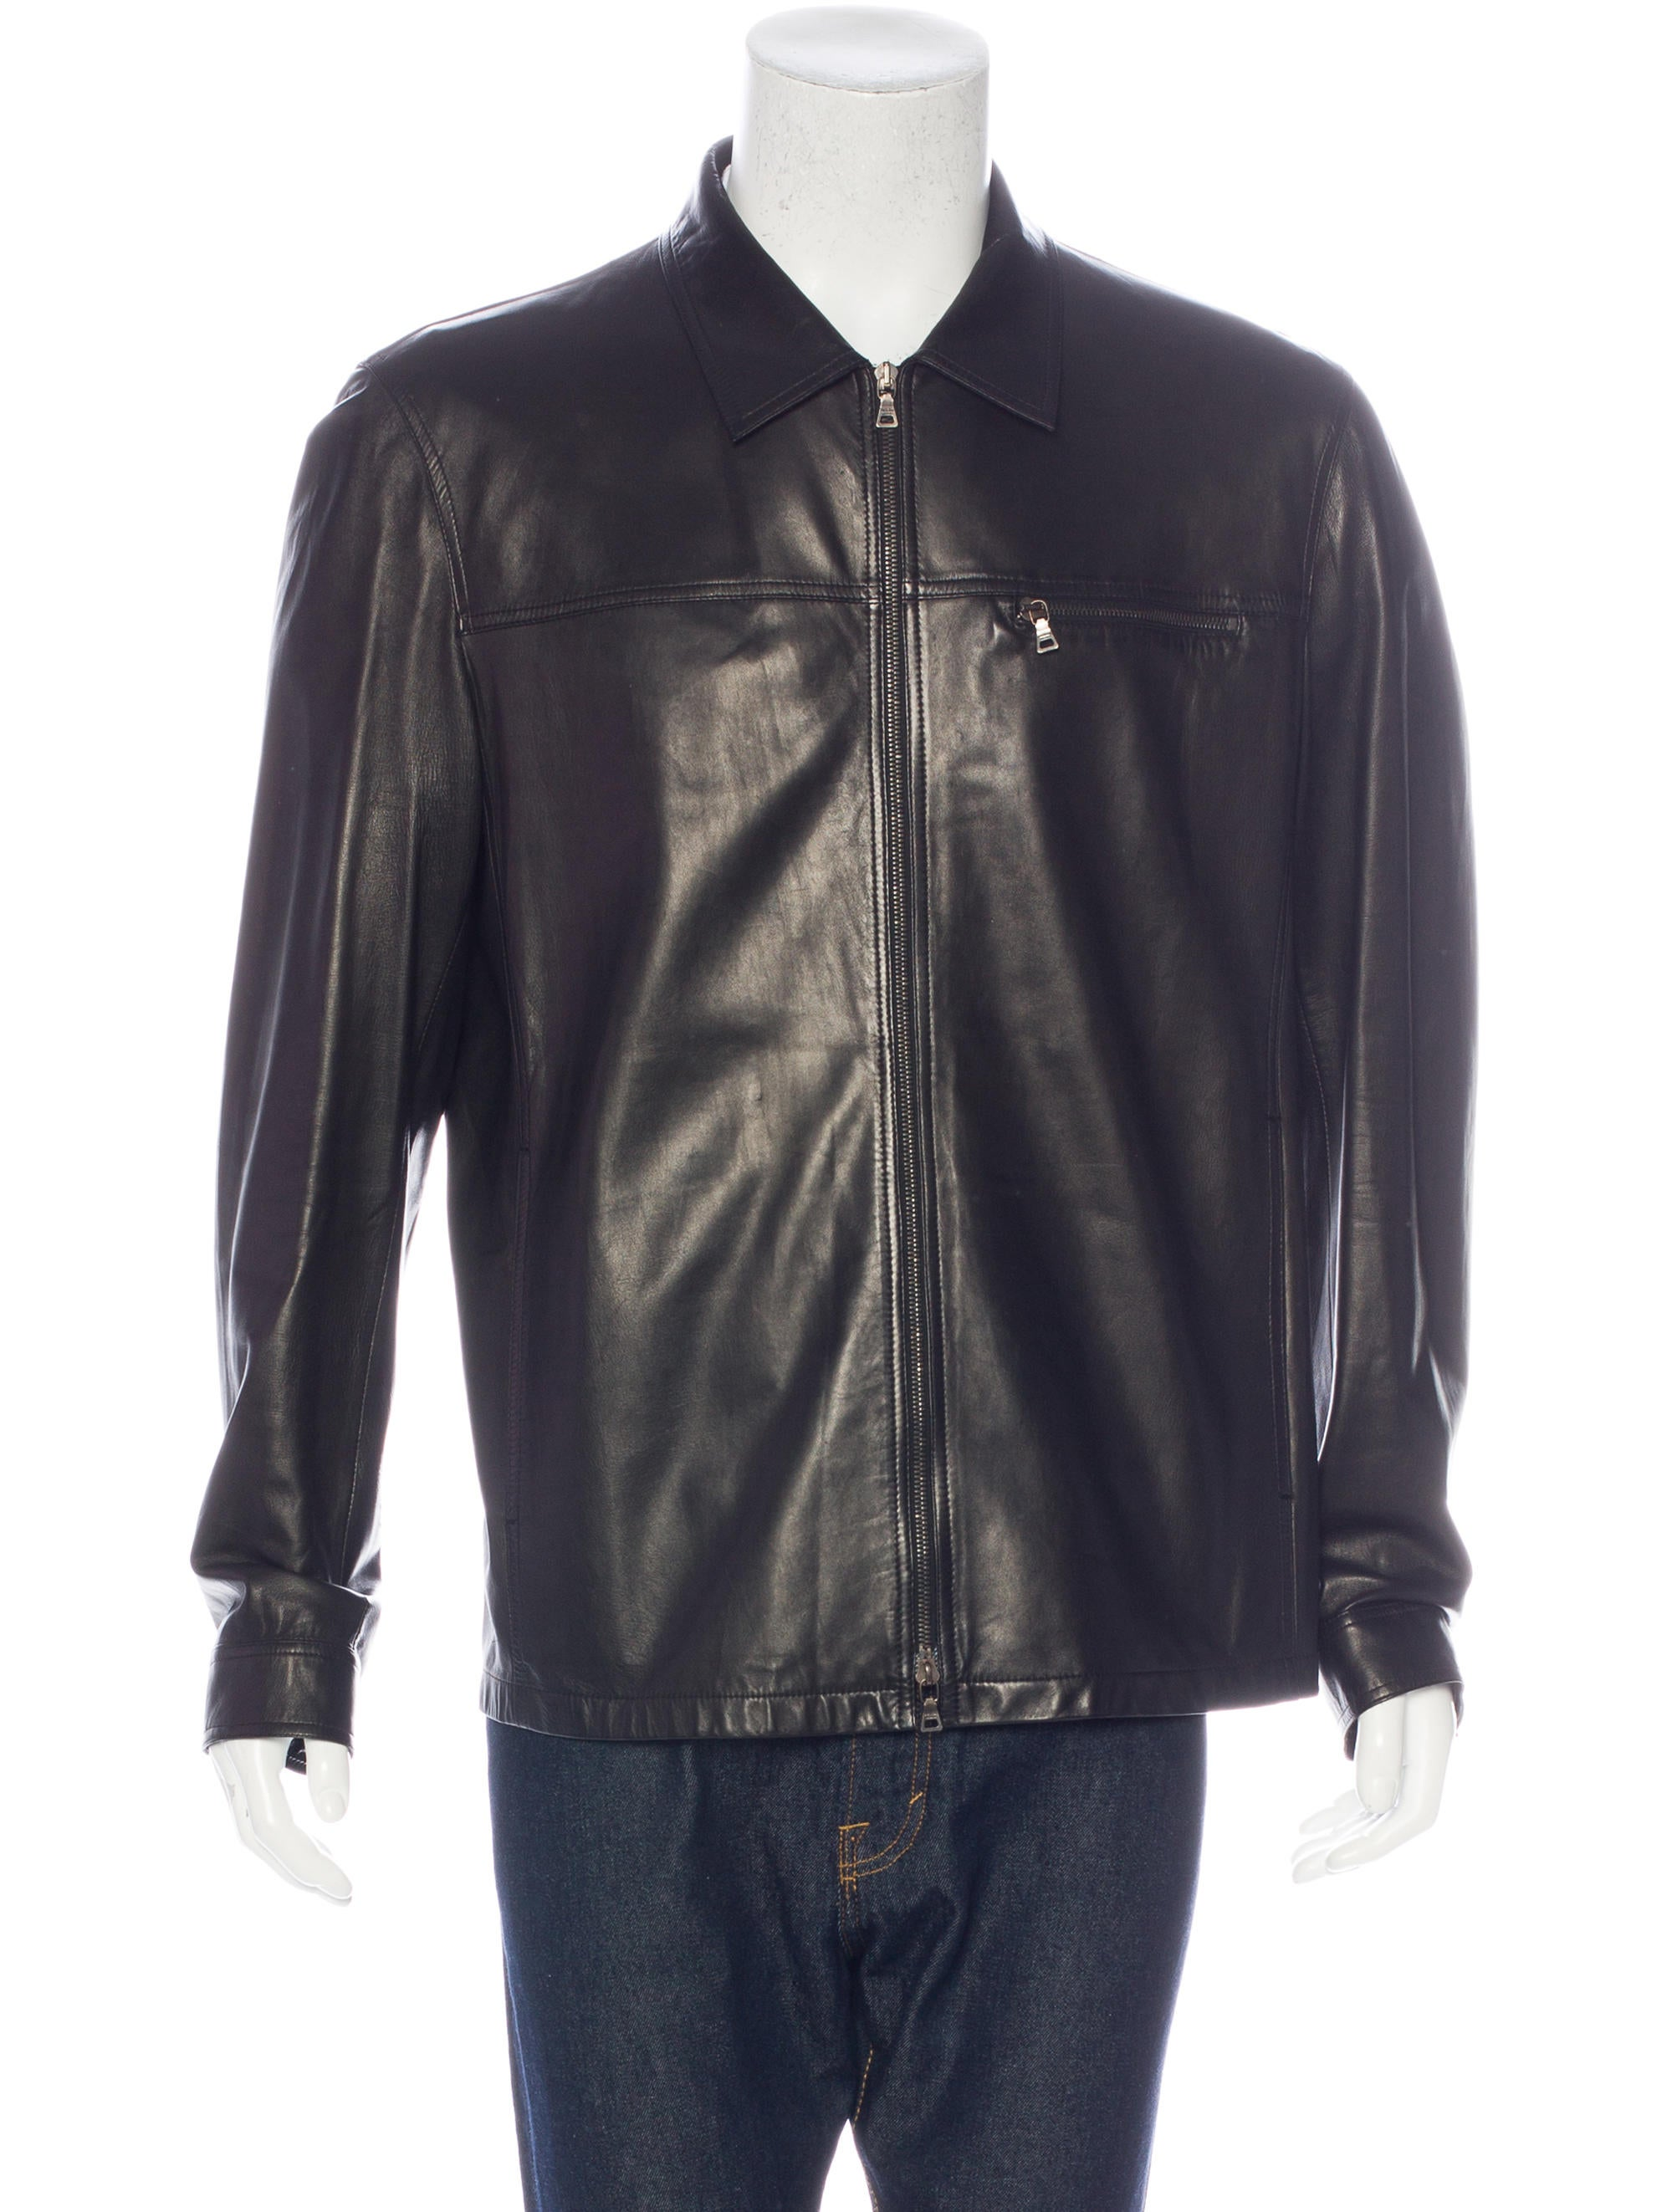 Fine leather jackets